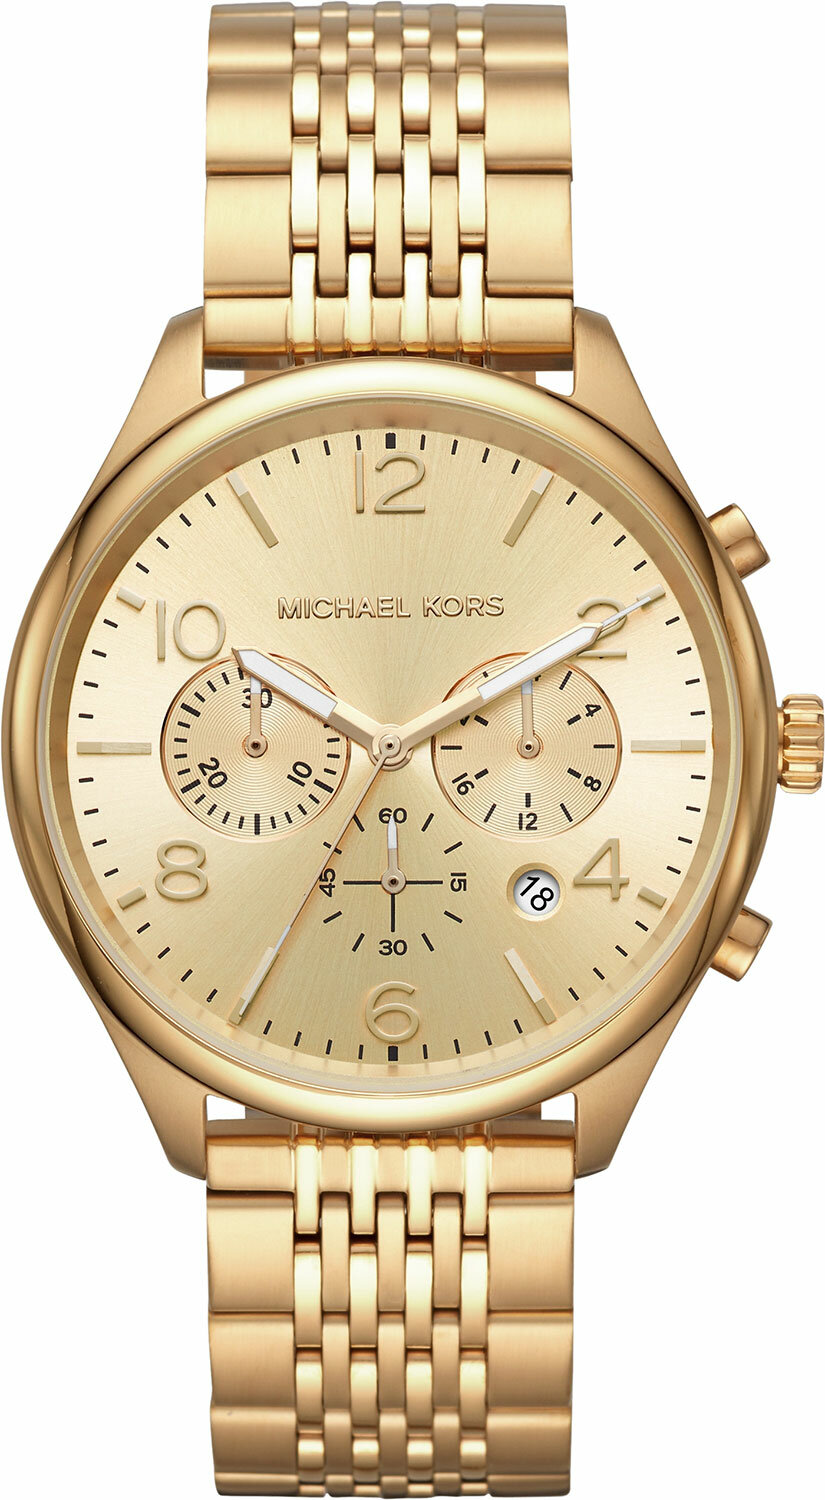 Find женские часы майкл корс from a vast selection of watches.